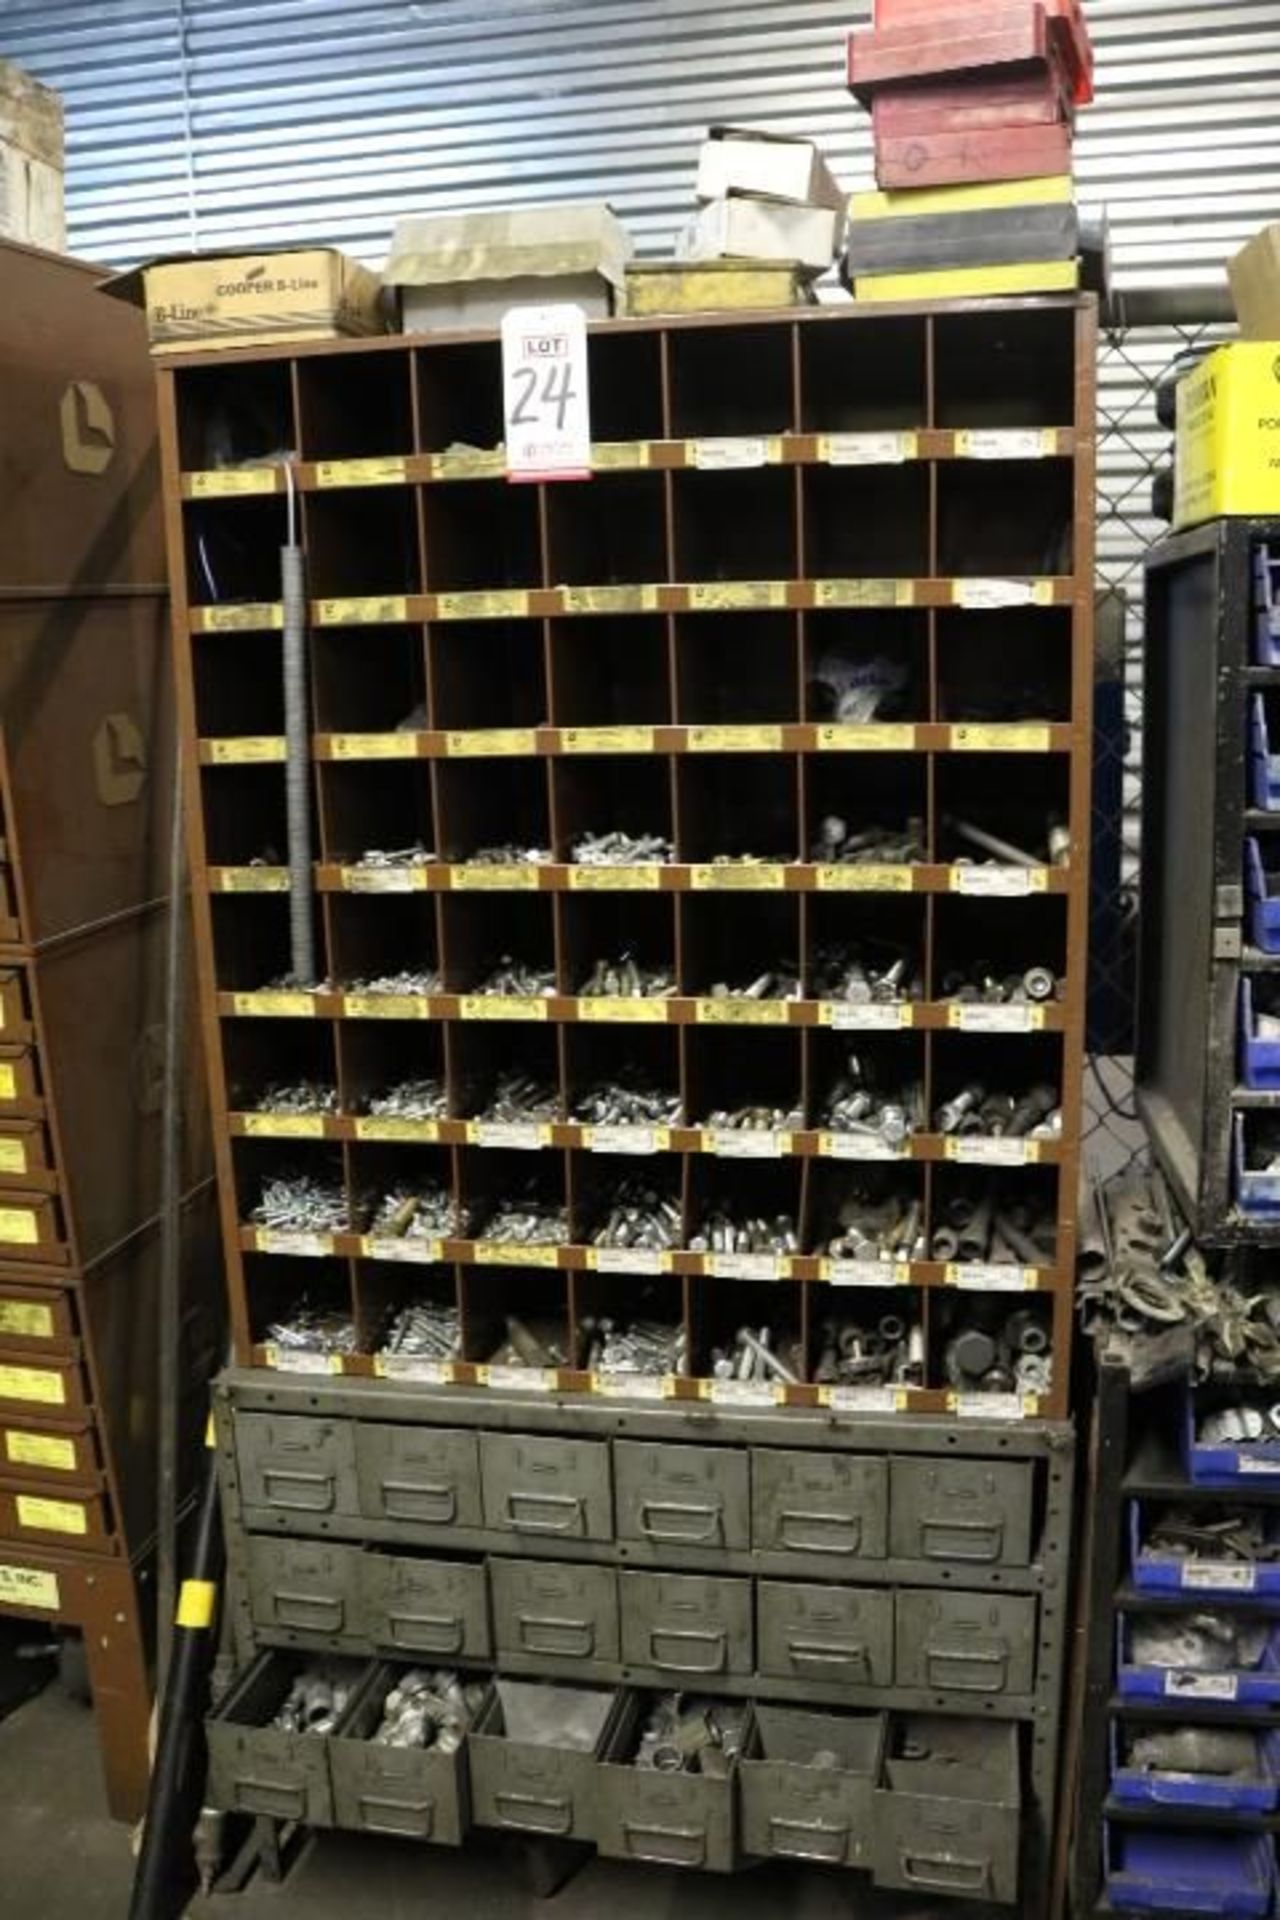 Lot 24 - HARDWARE CABINET W/ (18) PULLOUT DRAWERS OF CONDUIT FITTINGS AND (56) CUBBYHOLES OF NUTS, WASHERS